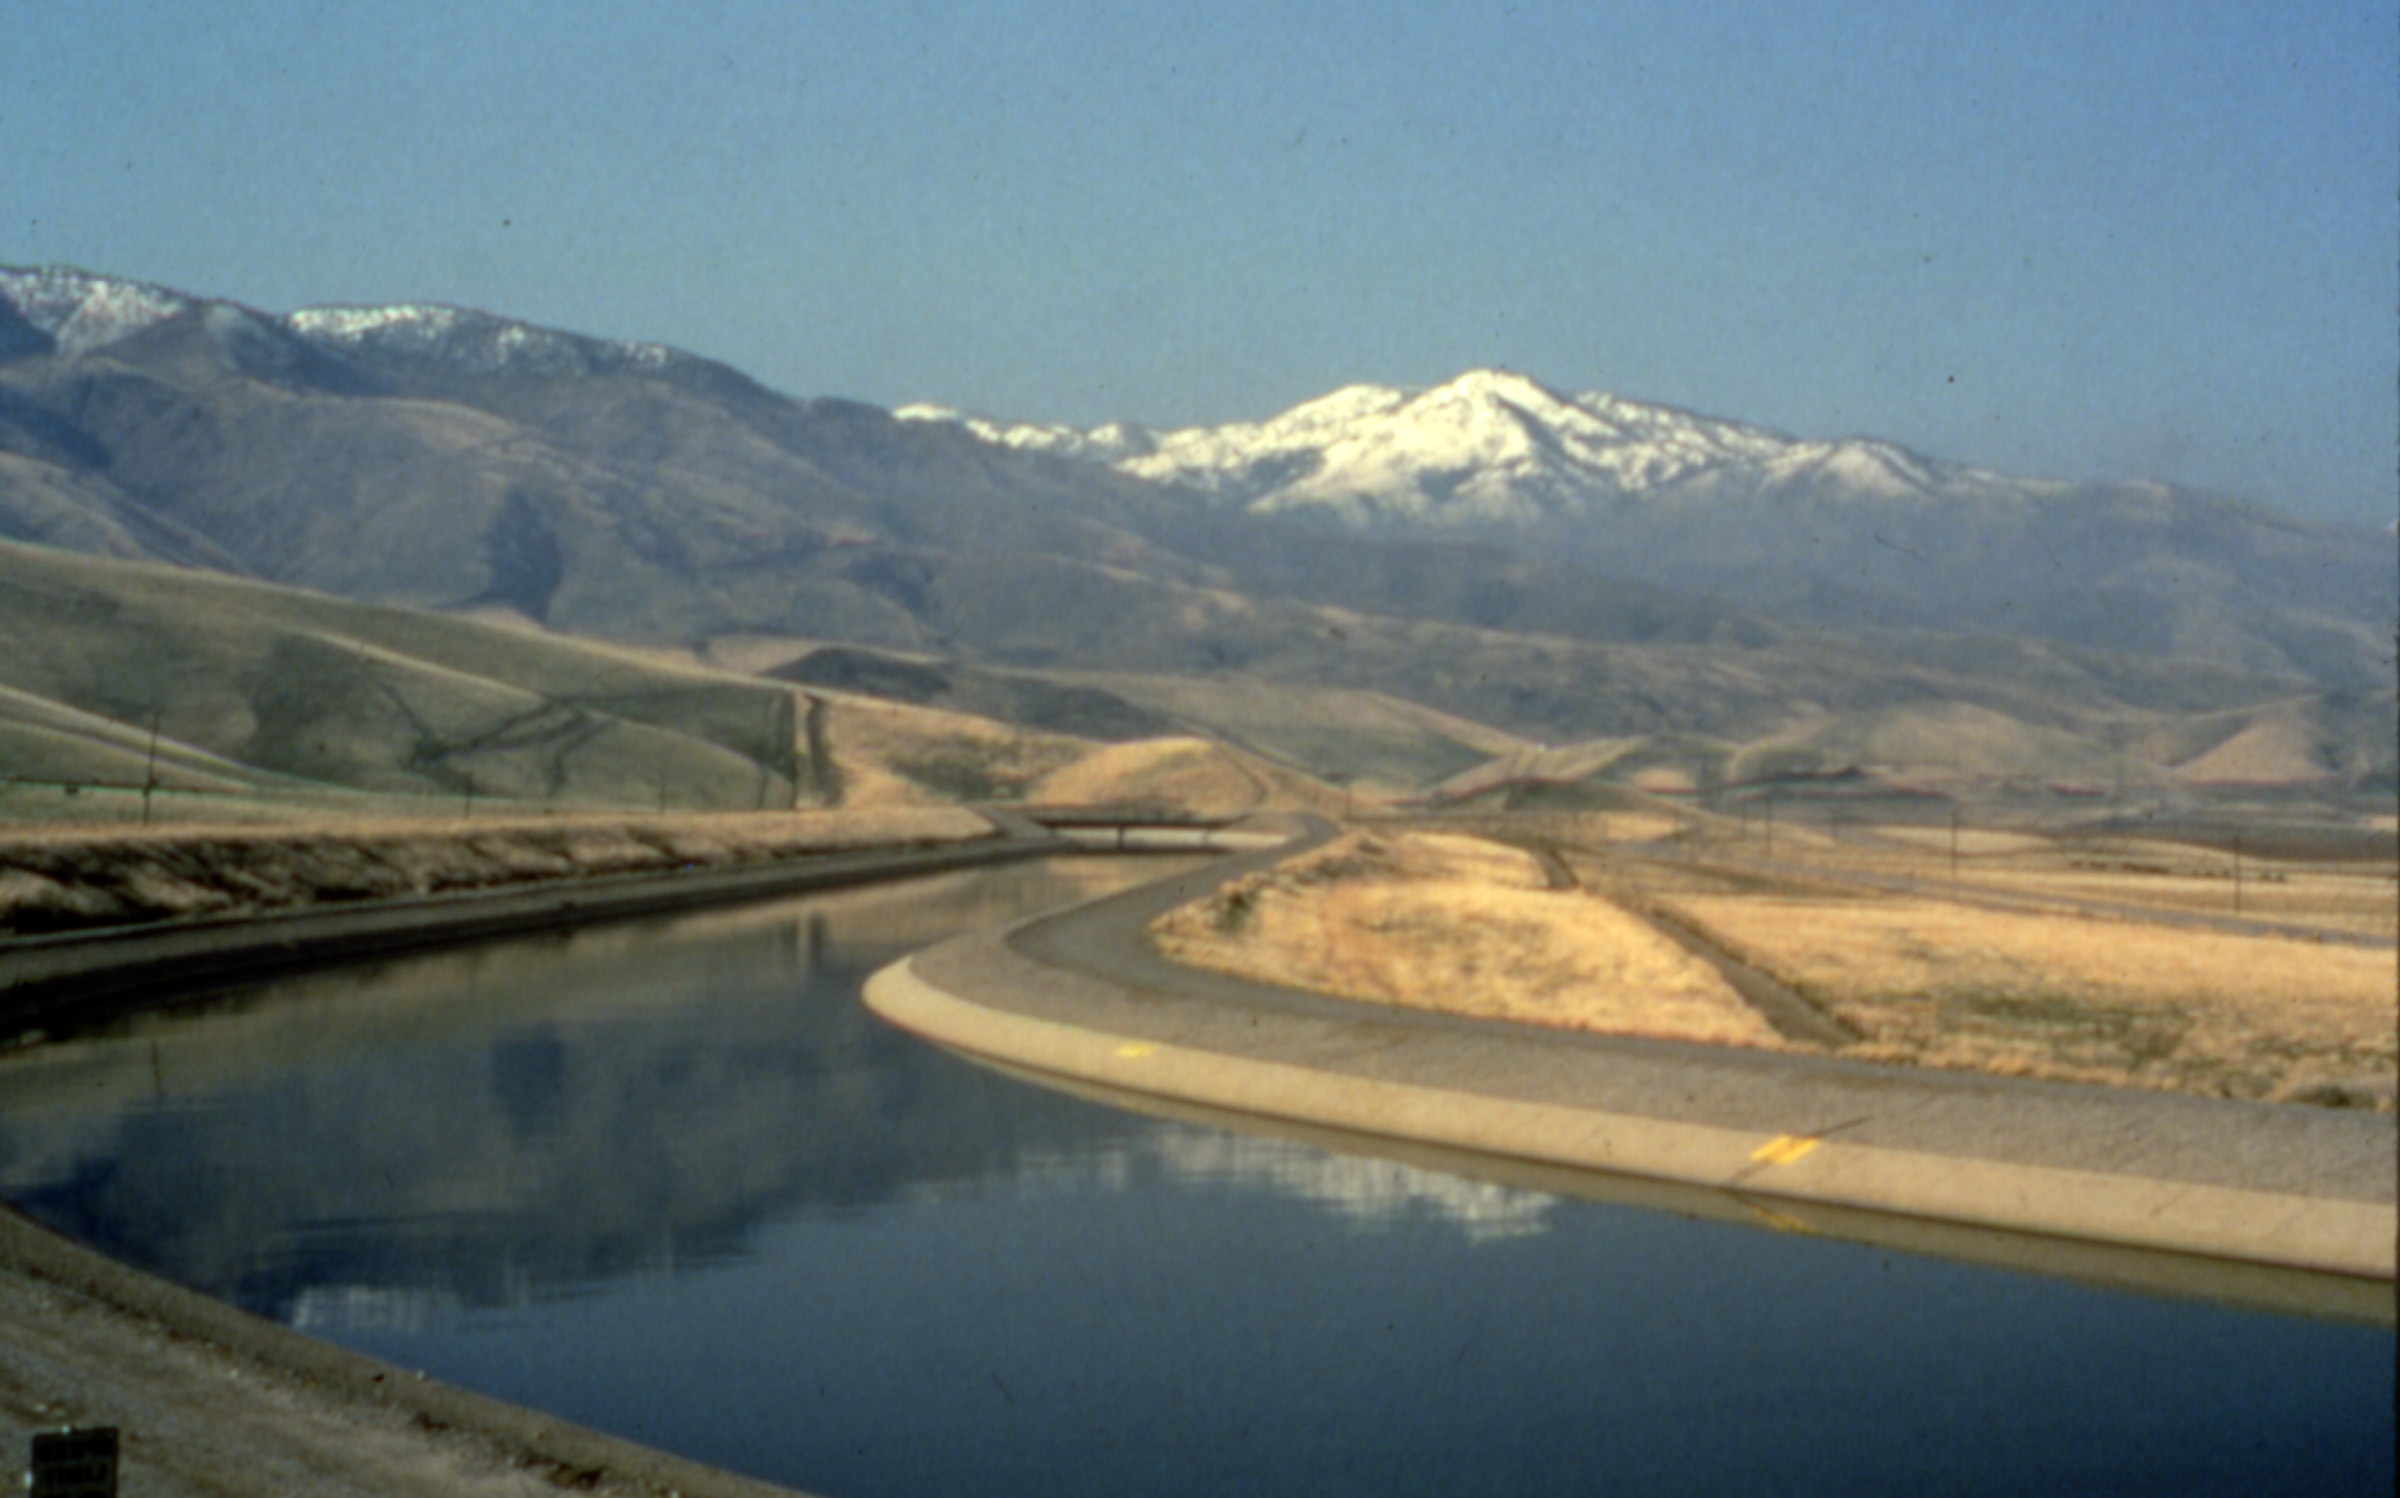 State Water Project canal with snow topped mountains in background